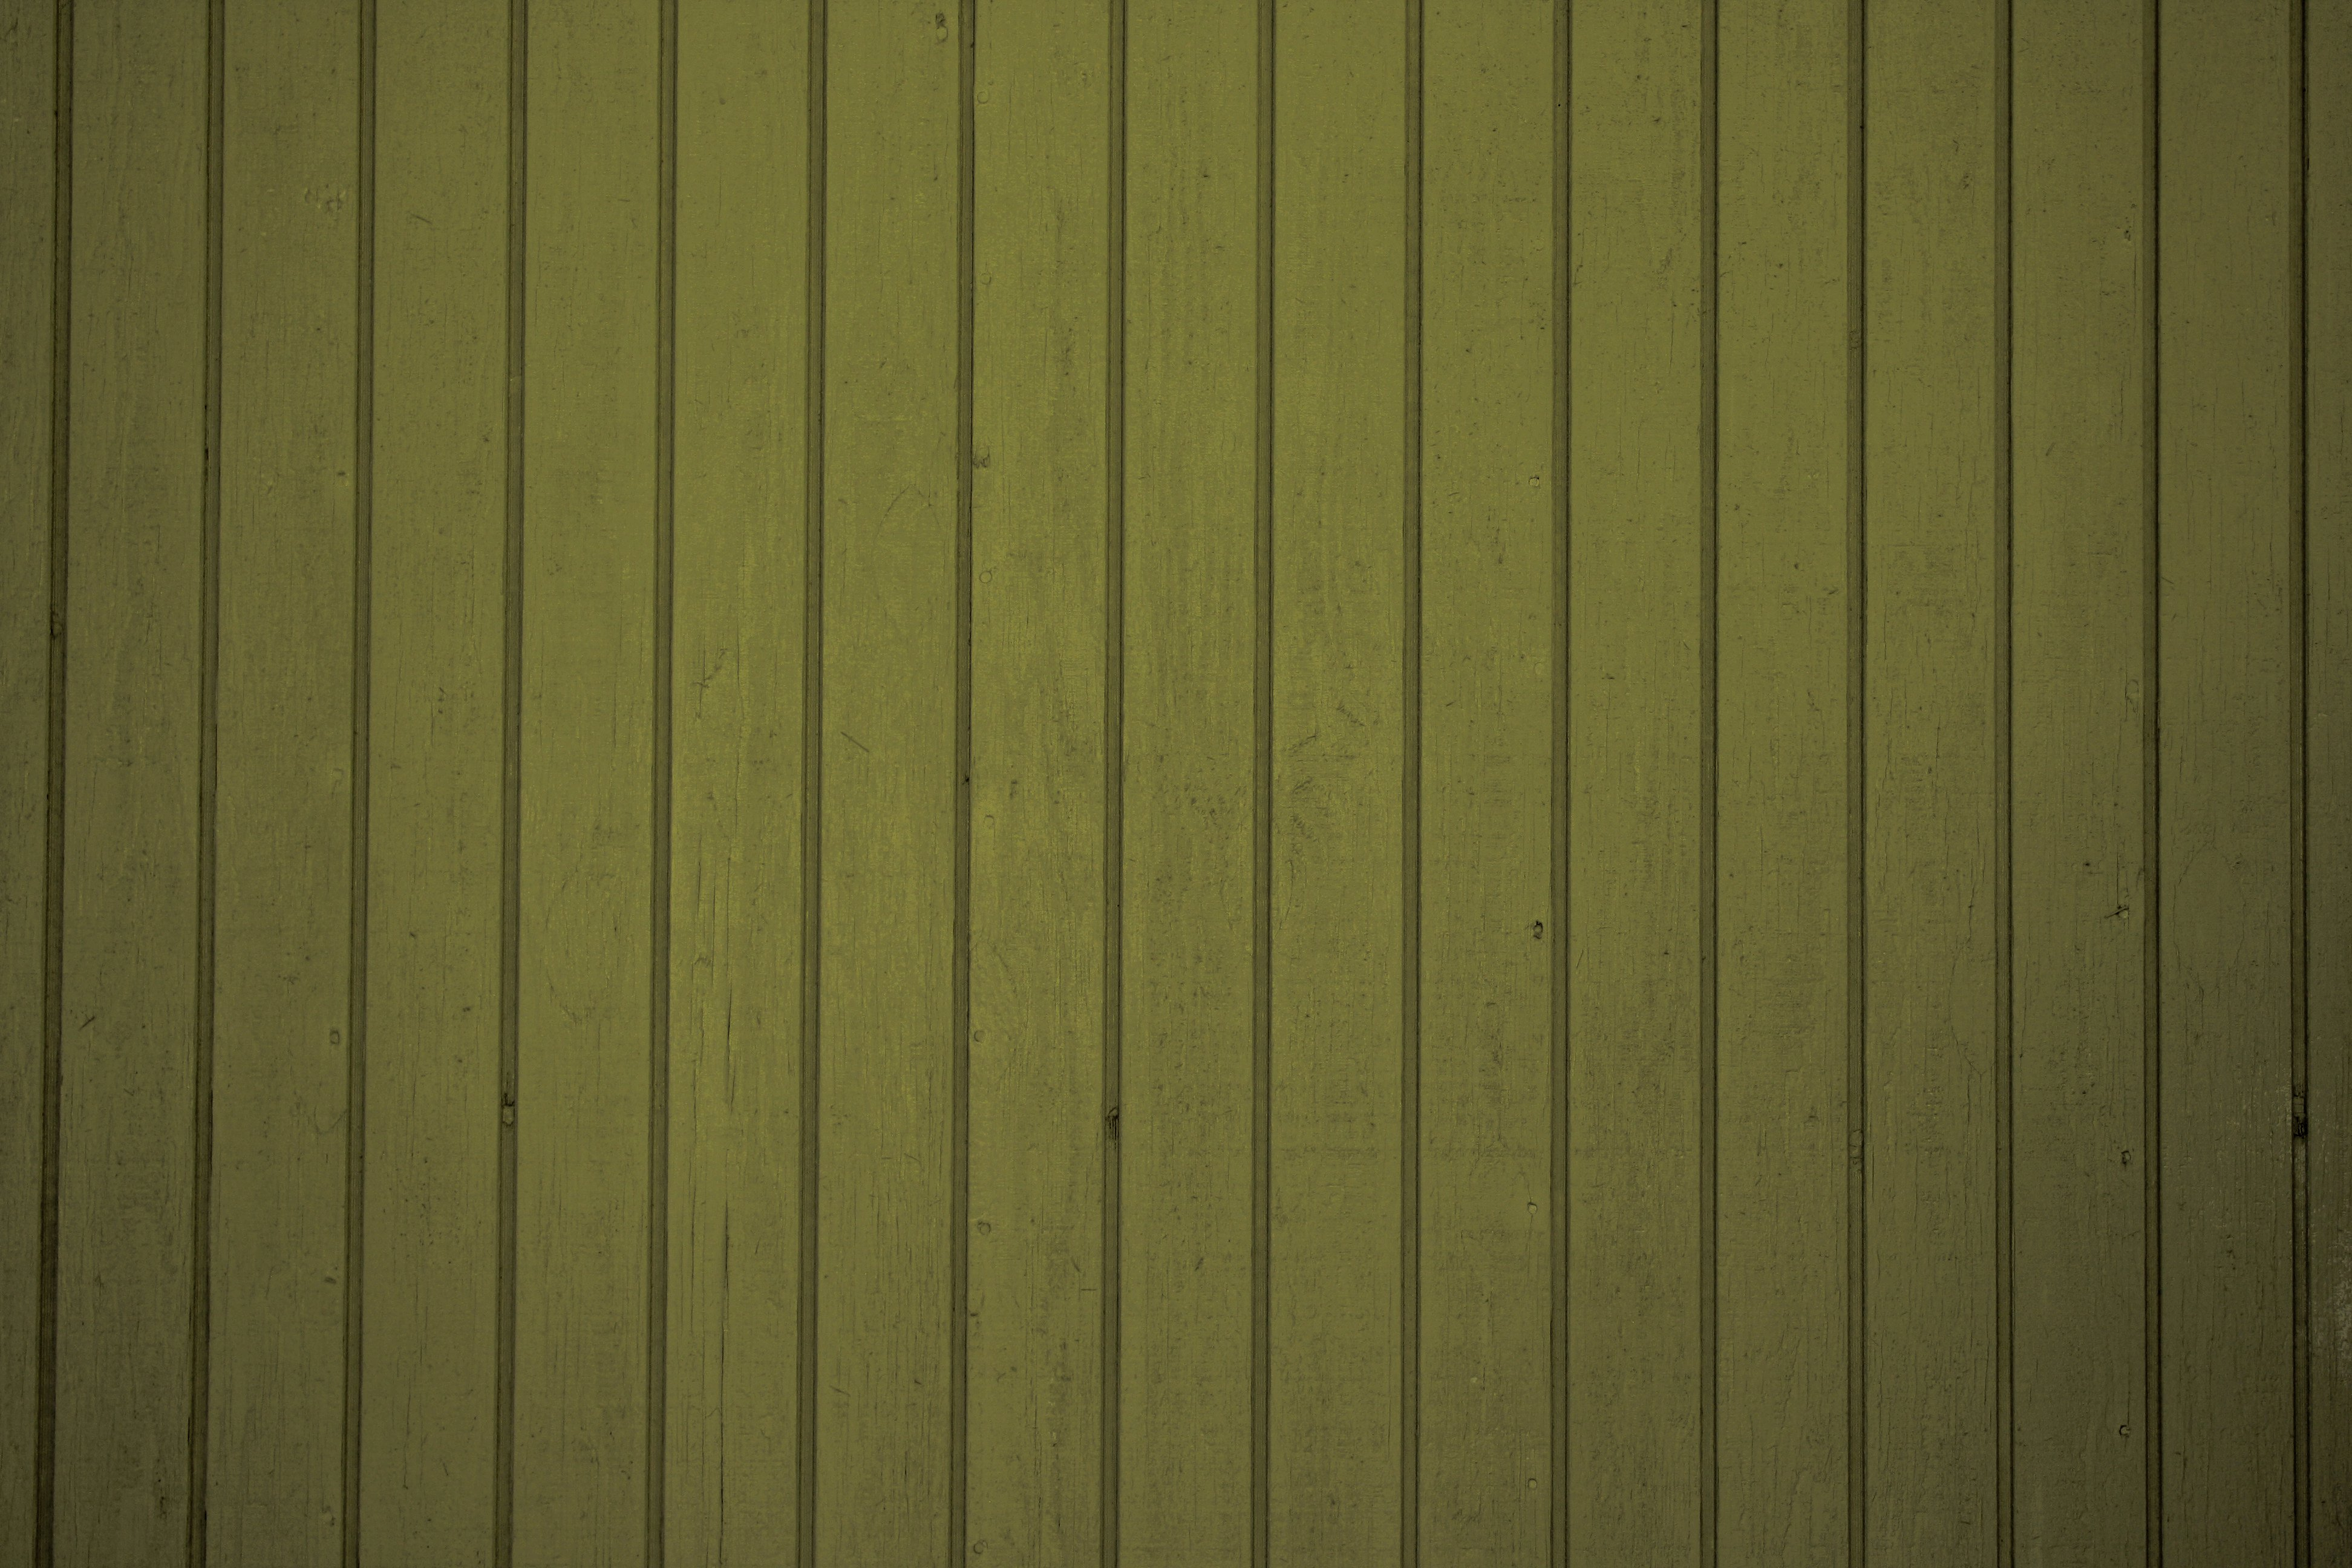 Treated Lumber Vertical Siding Texture Picture Free